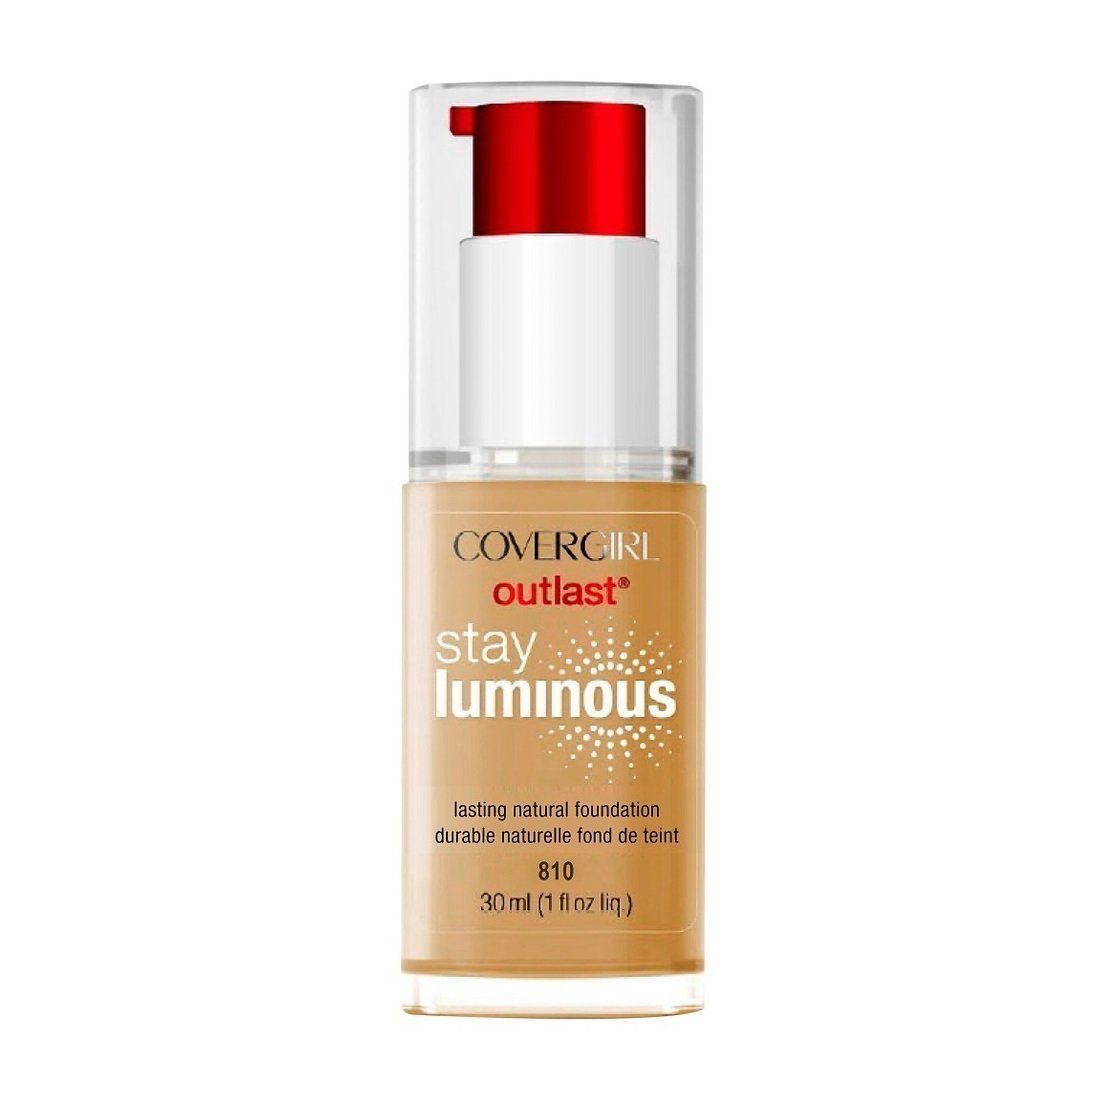 Covergirl Outlast Stay Luminous Foundation #810 Classic Ivory